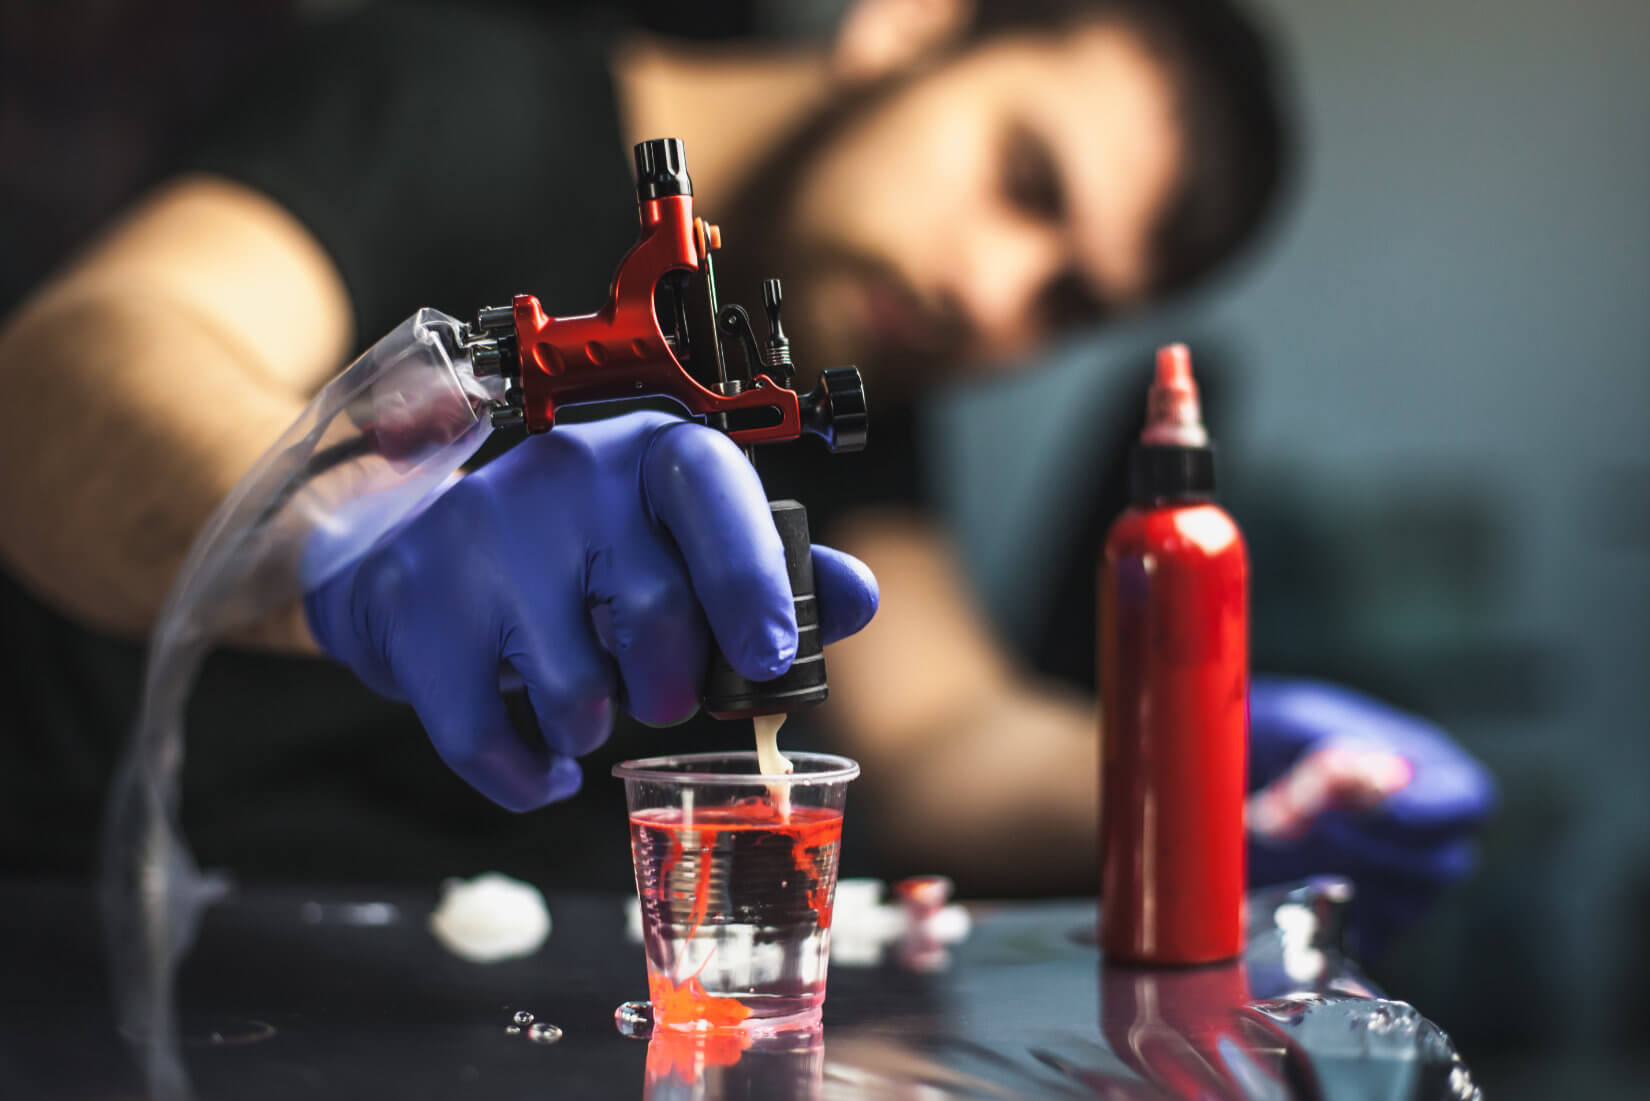 Infection control training course suitable for tattooists